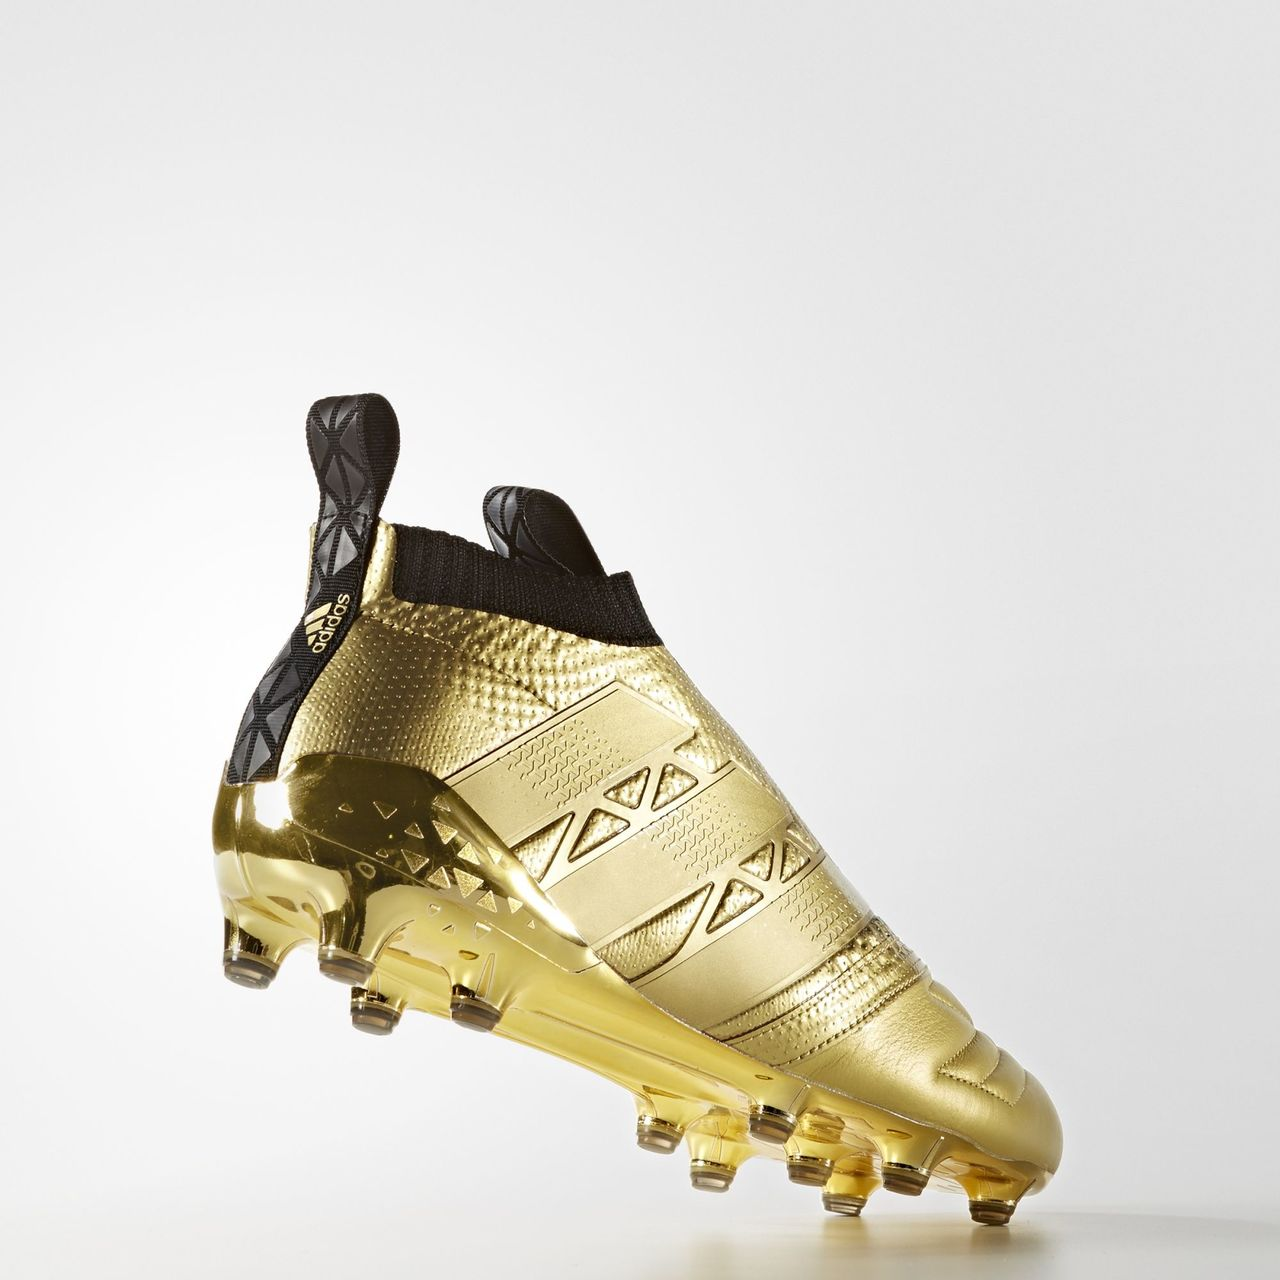 finest selection 06541 57a76 reduced shop the adidas ace 16 purecontrol white black metallic gold  shopcleats e2978 0d412 ireland click to enlarge image ...